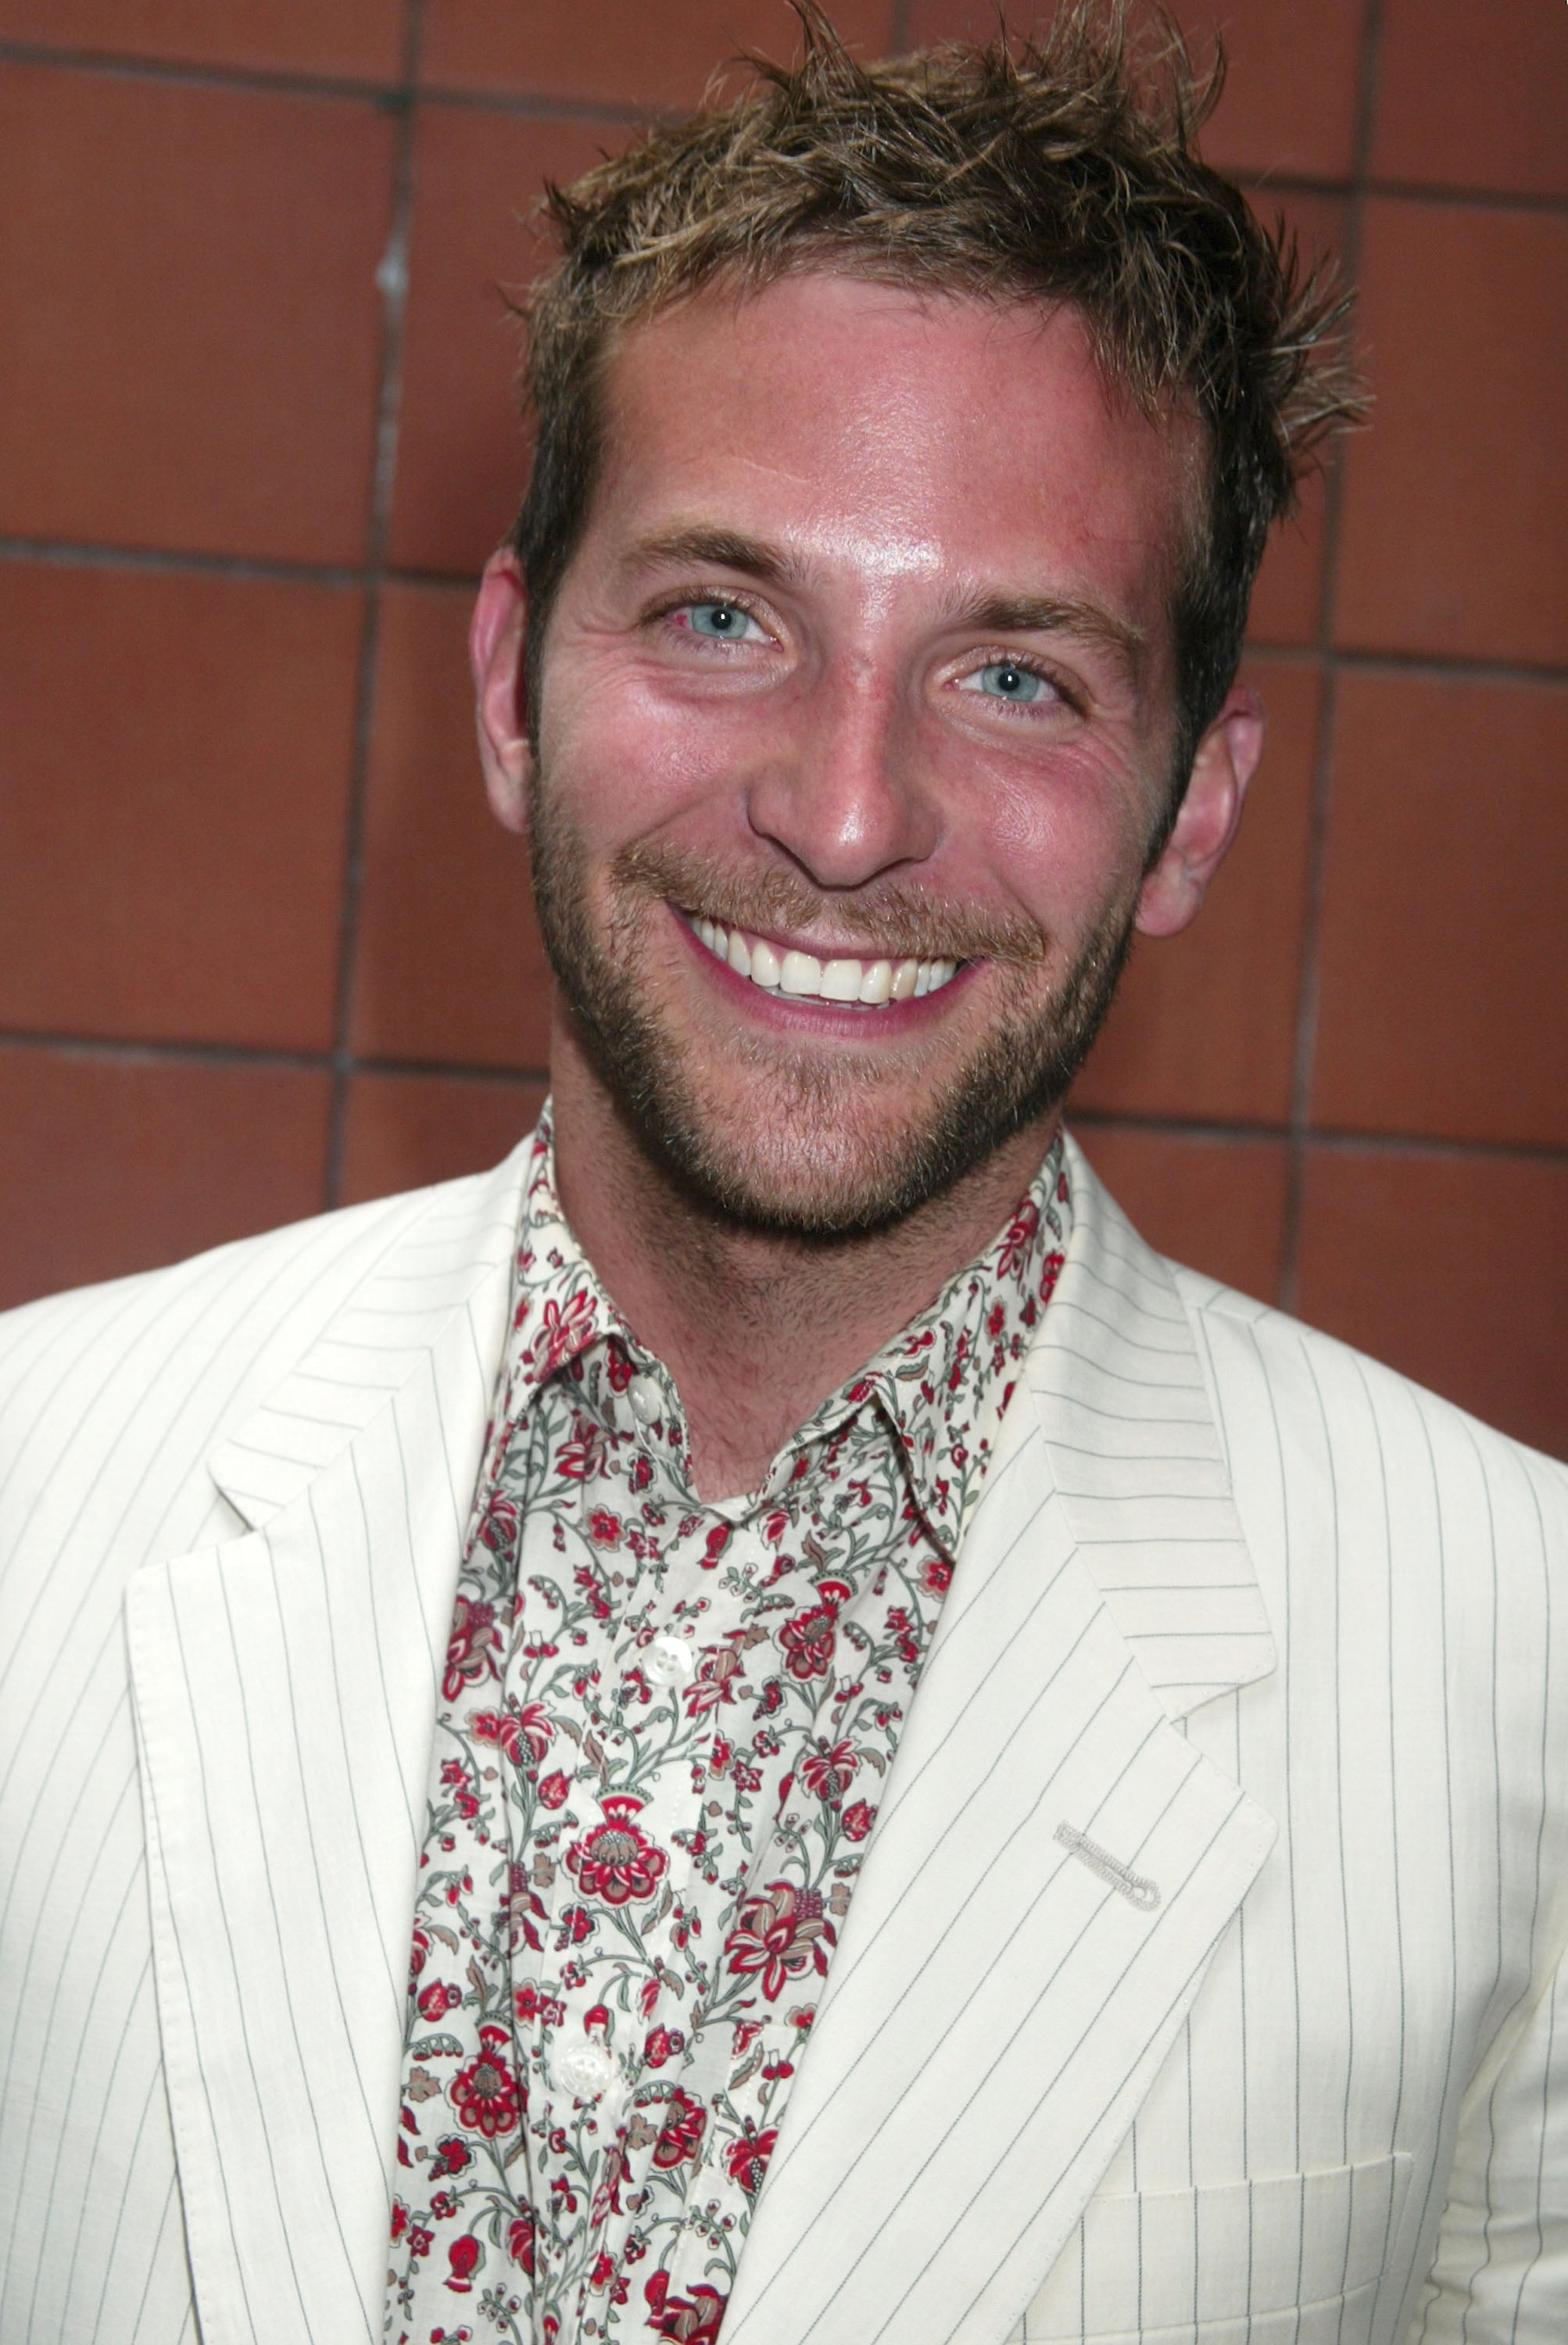 Was Bradley taking hairstyling cues from Justin Timberlake in 2005?